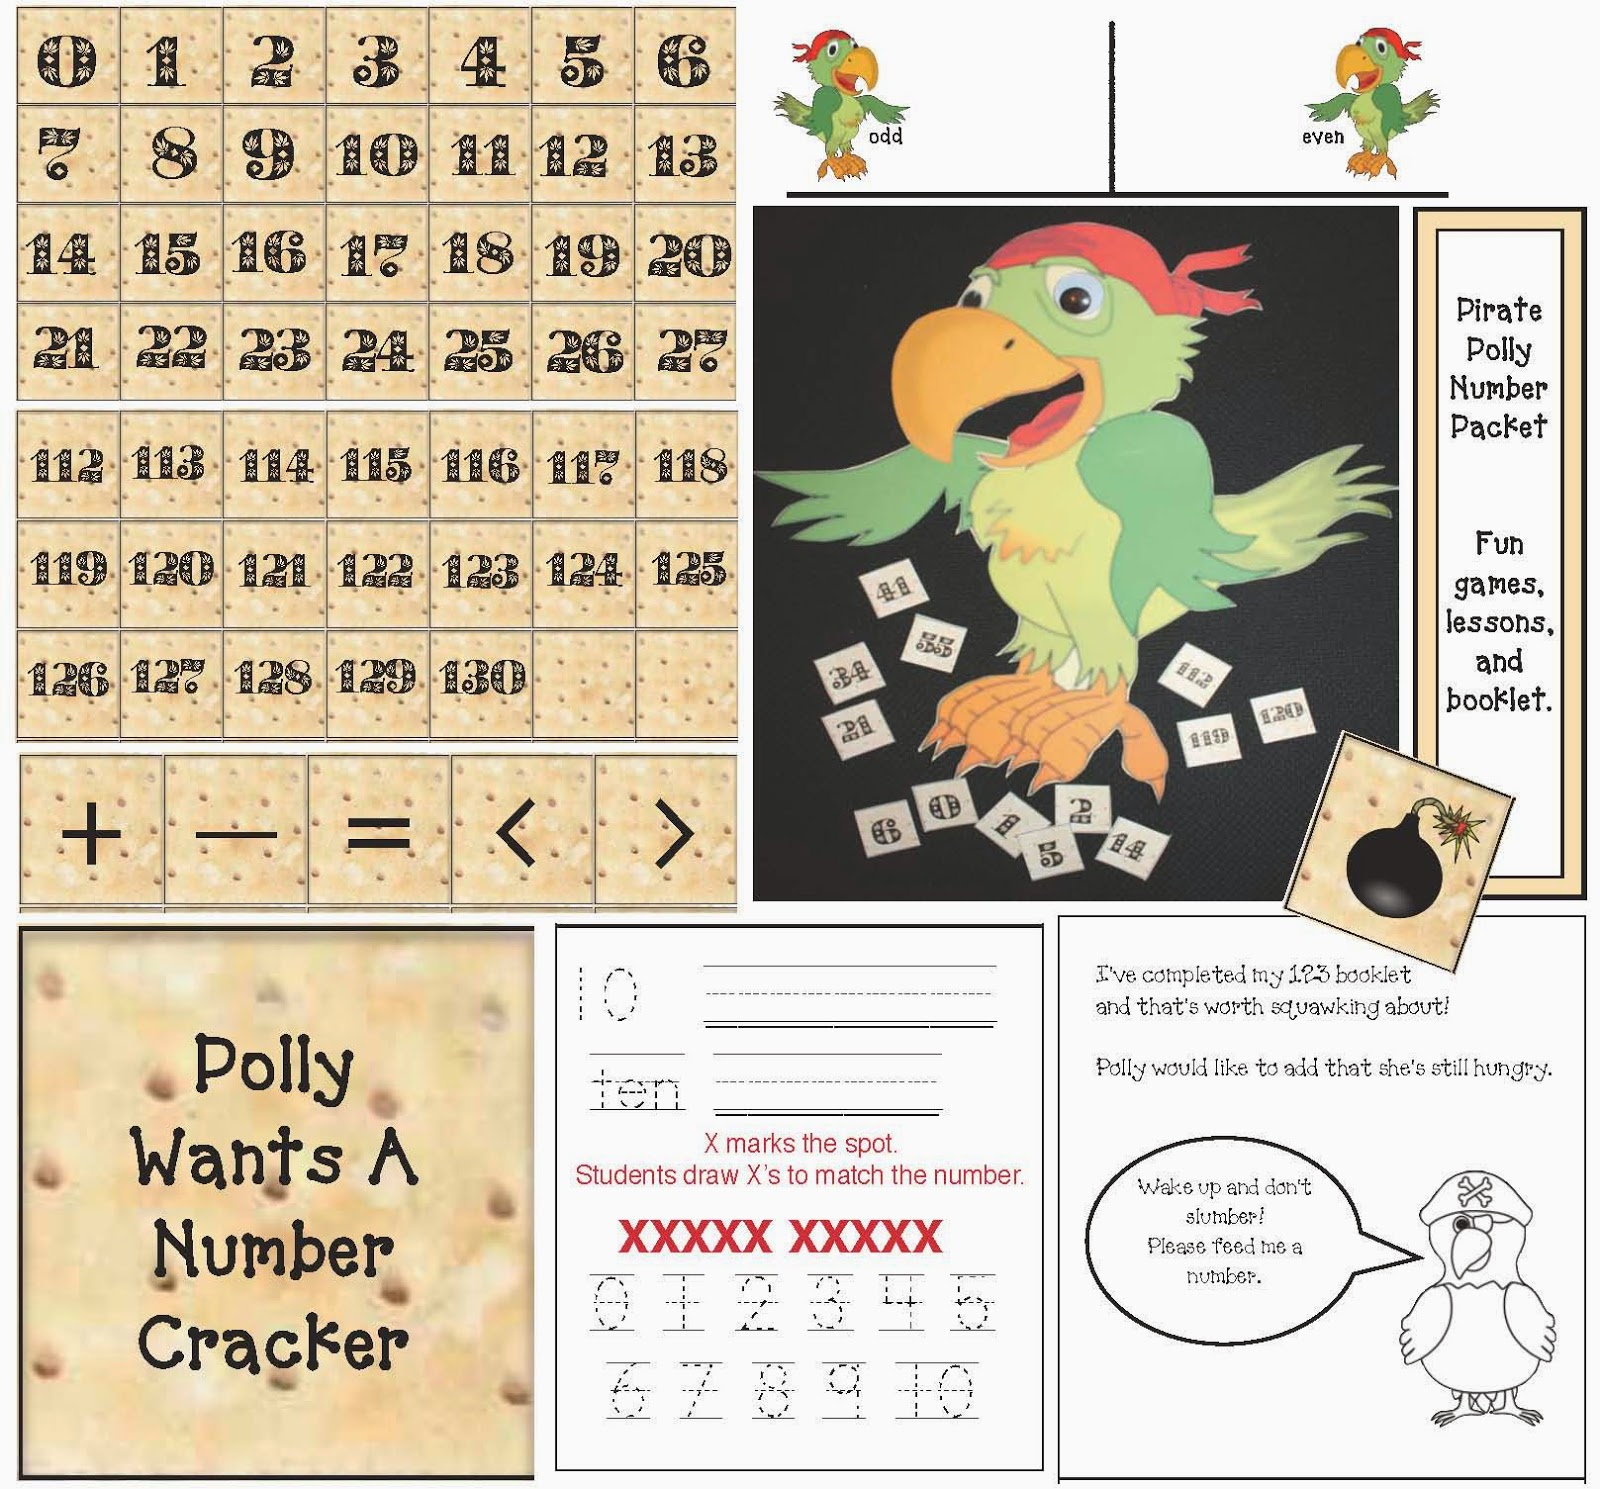 Classroom Freebies Polly Wants A Number Cracker Packet